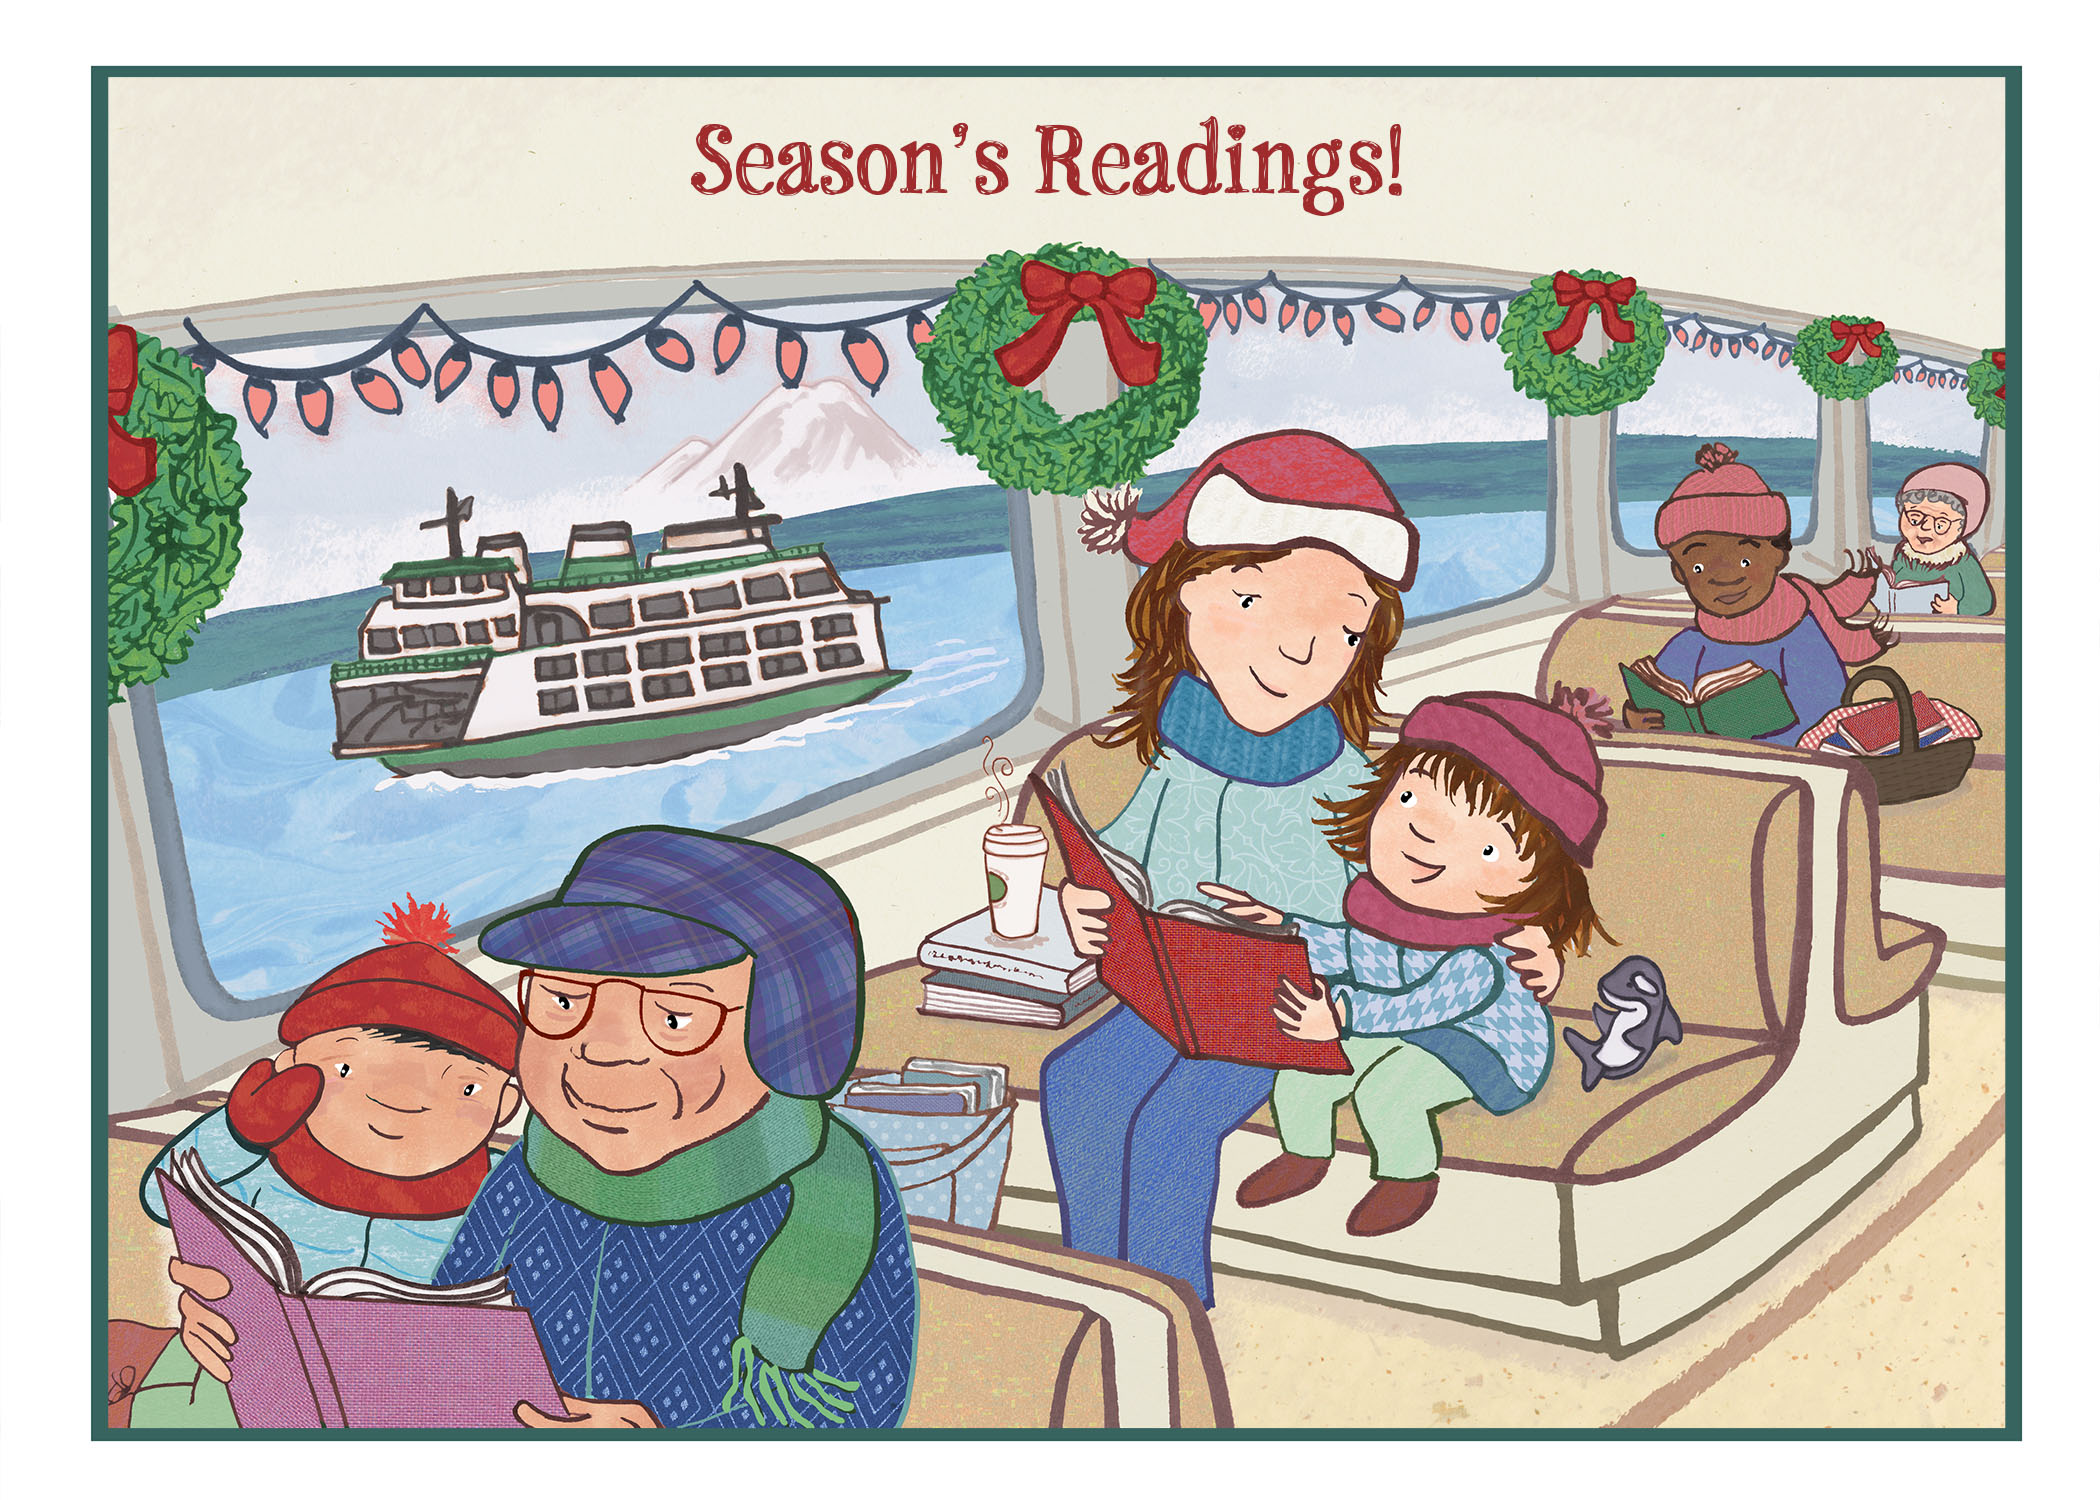 SeasonsReadingsFerryCOLOR.jpg